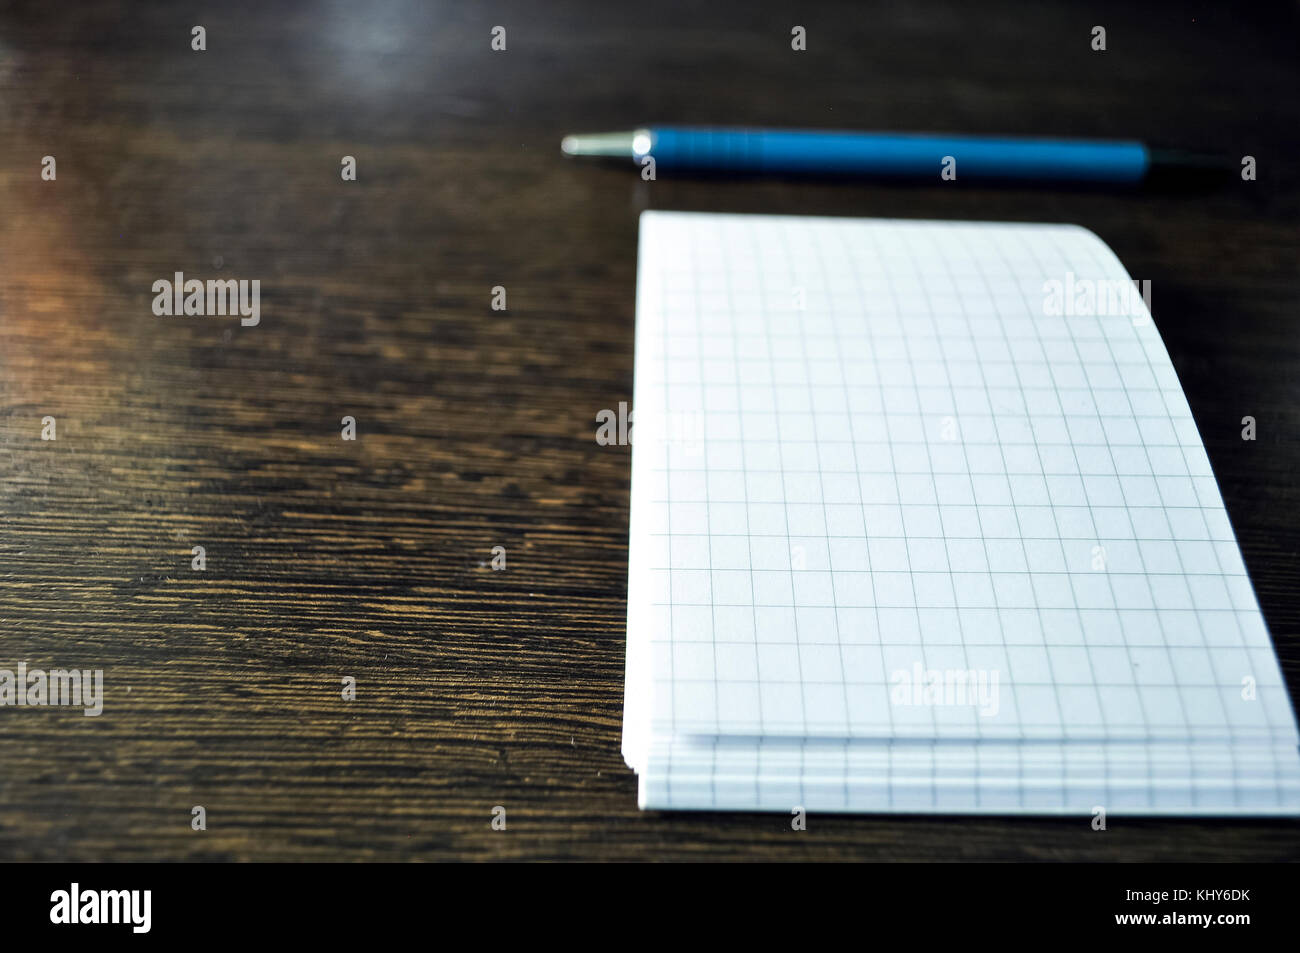 Cool stationery items home School Stationery Items Lying On The Desktop Place To Work At Home Of Alamy Stationery Items Lying On The Desktop Place To Work At Home Of